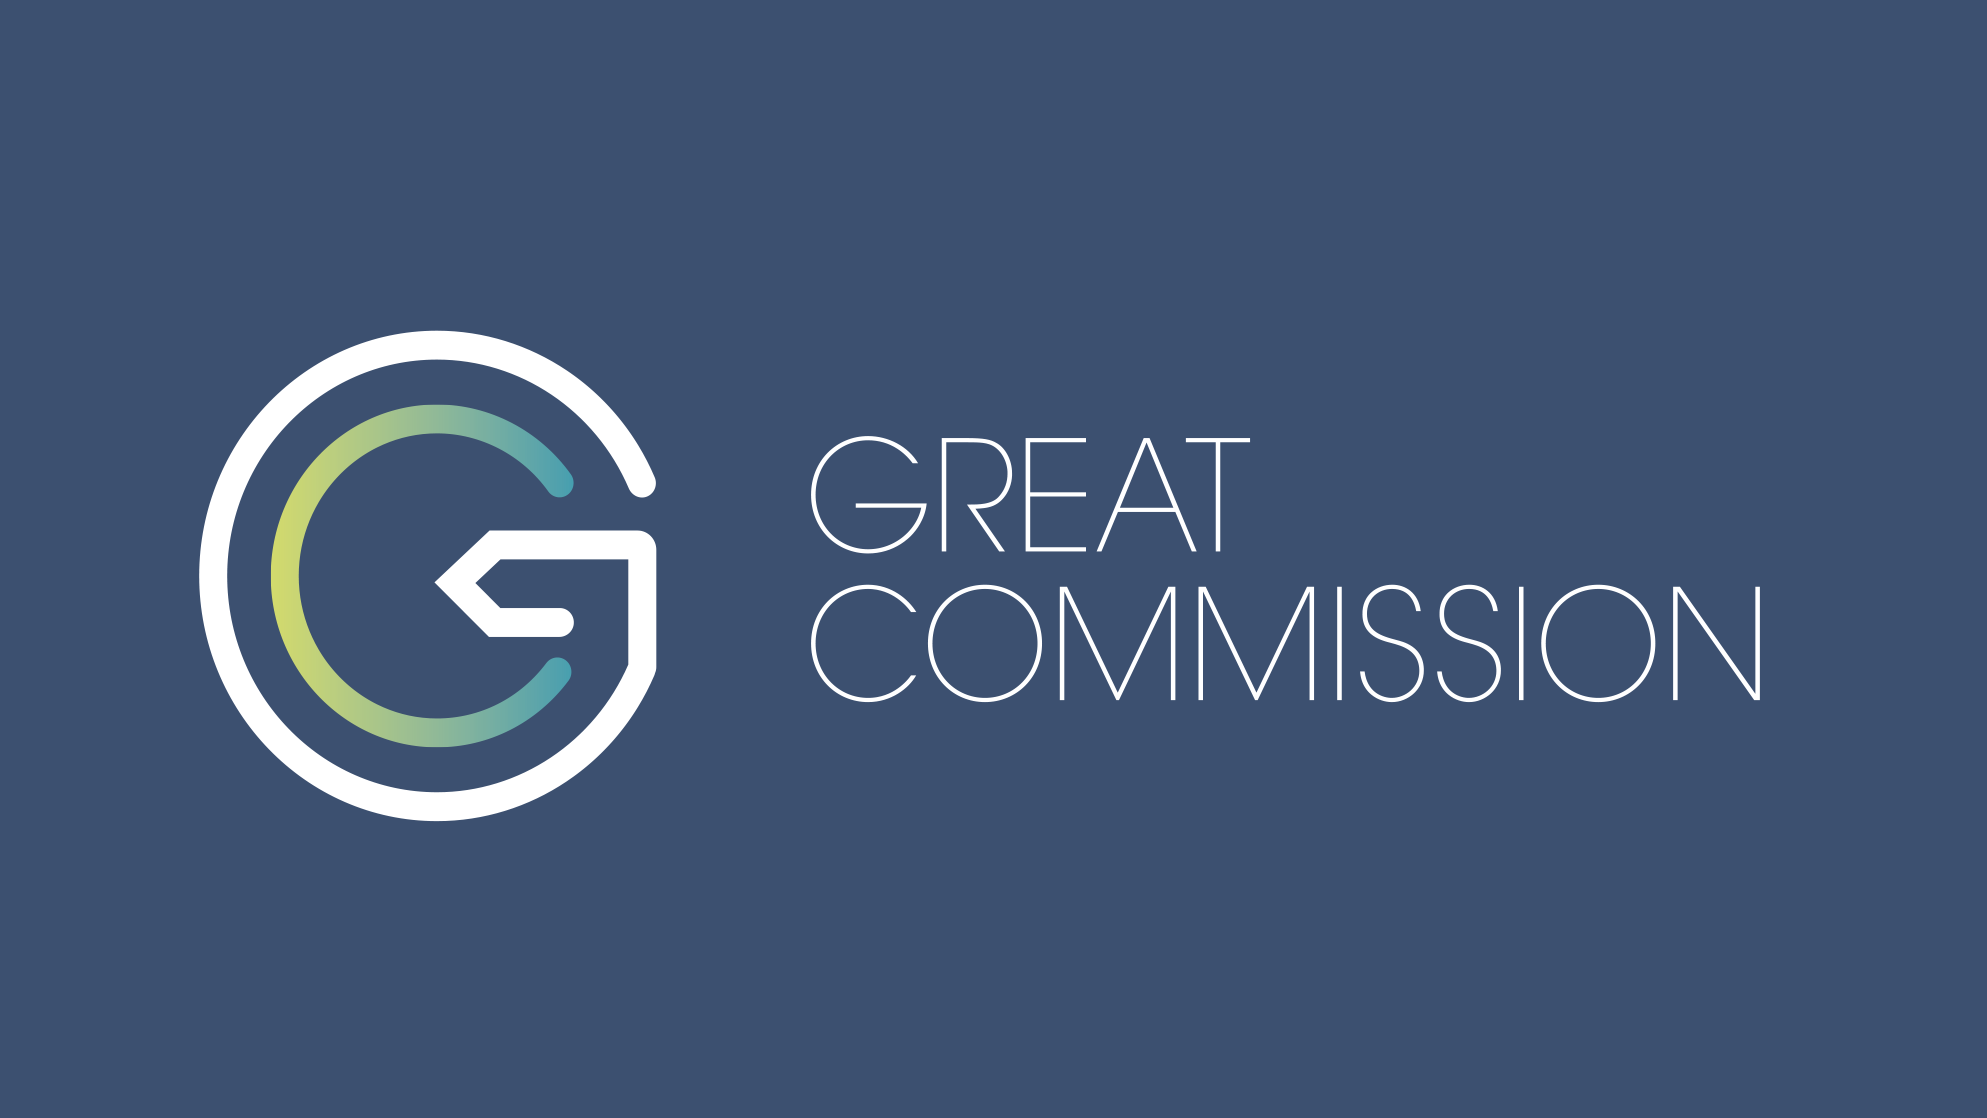 Gc card logo